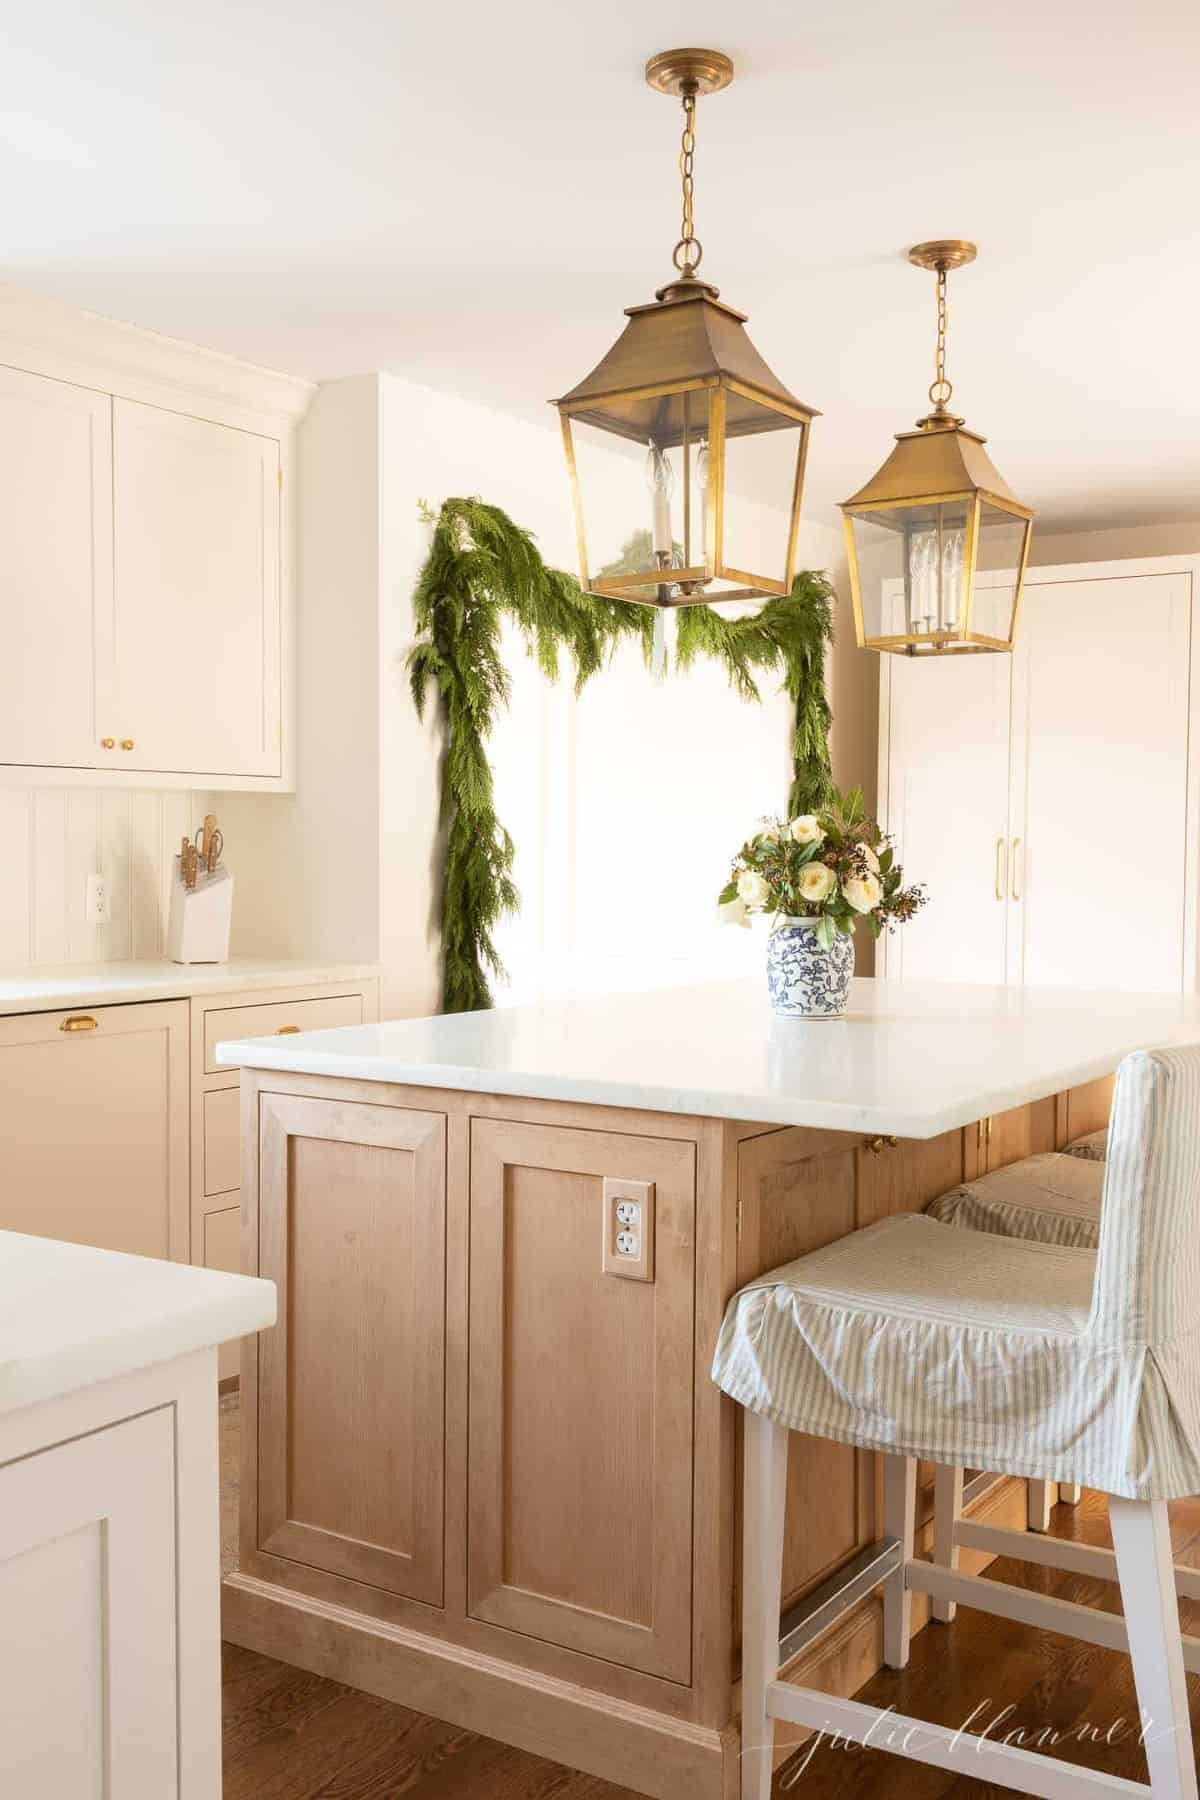 A white kitchen with a soft wood island and shaker kitchen cabinets.